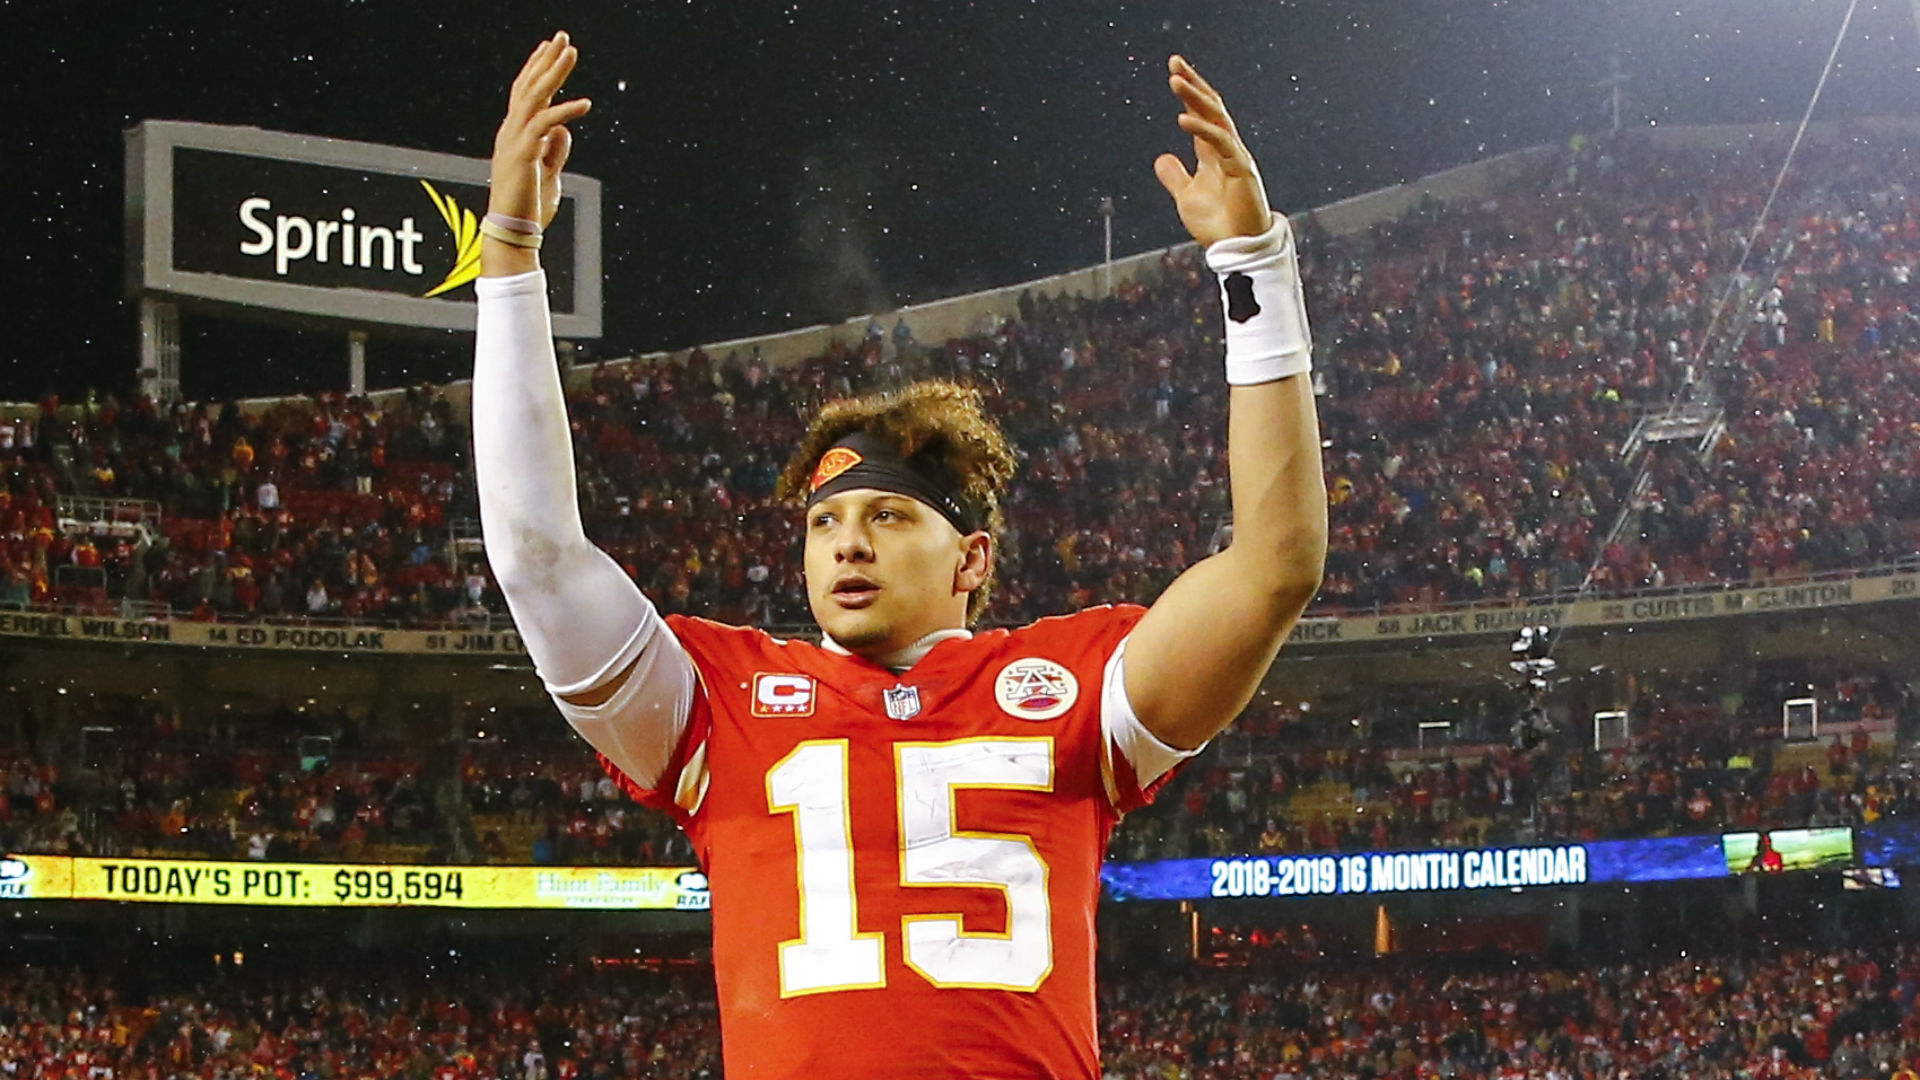 Patrick Mahomes to sign record deal in 2020